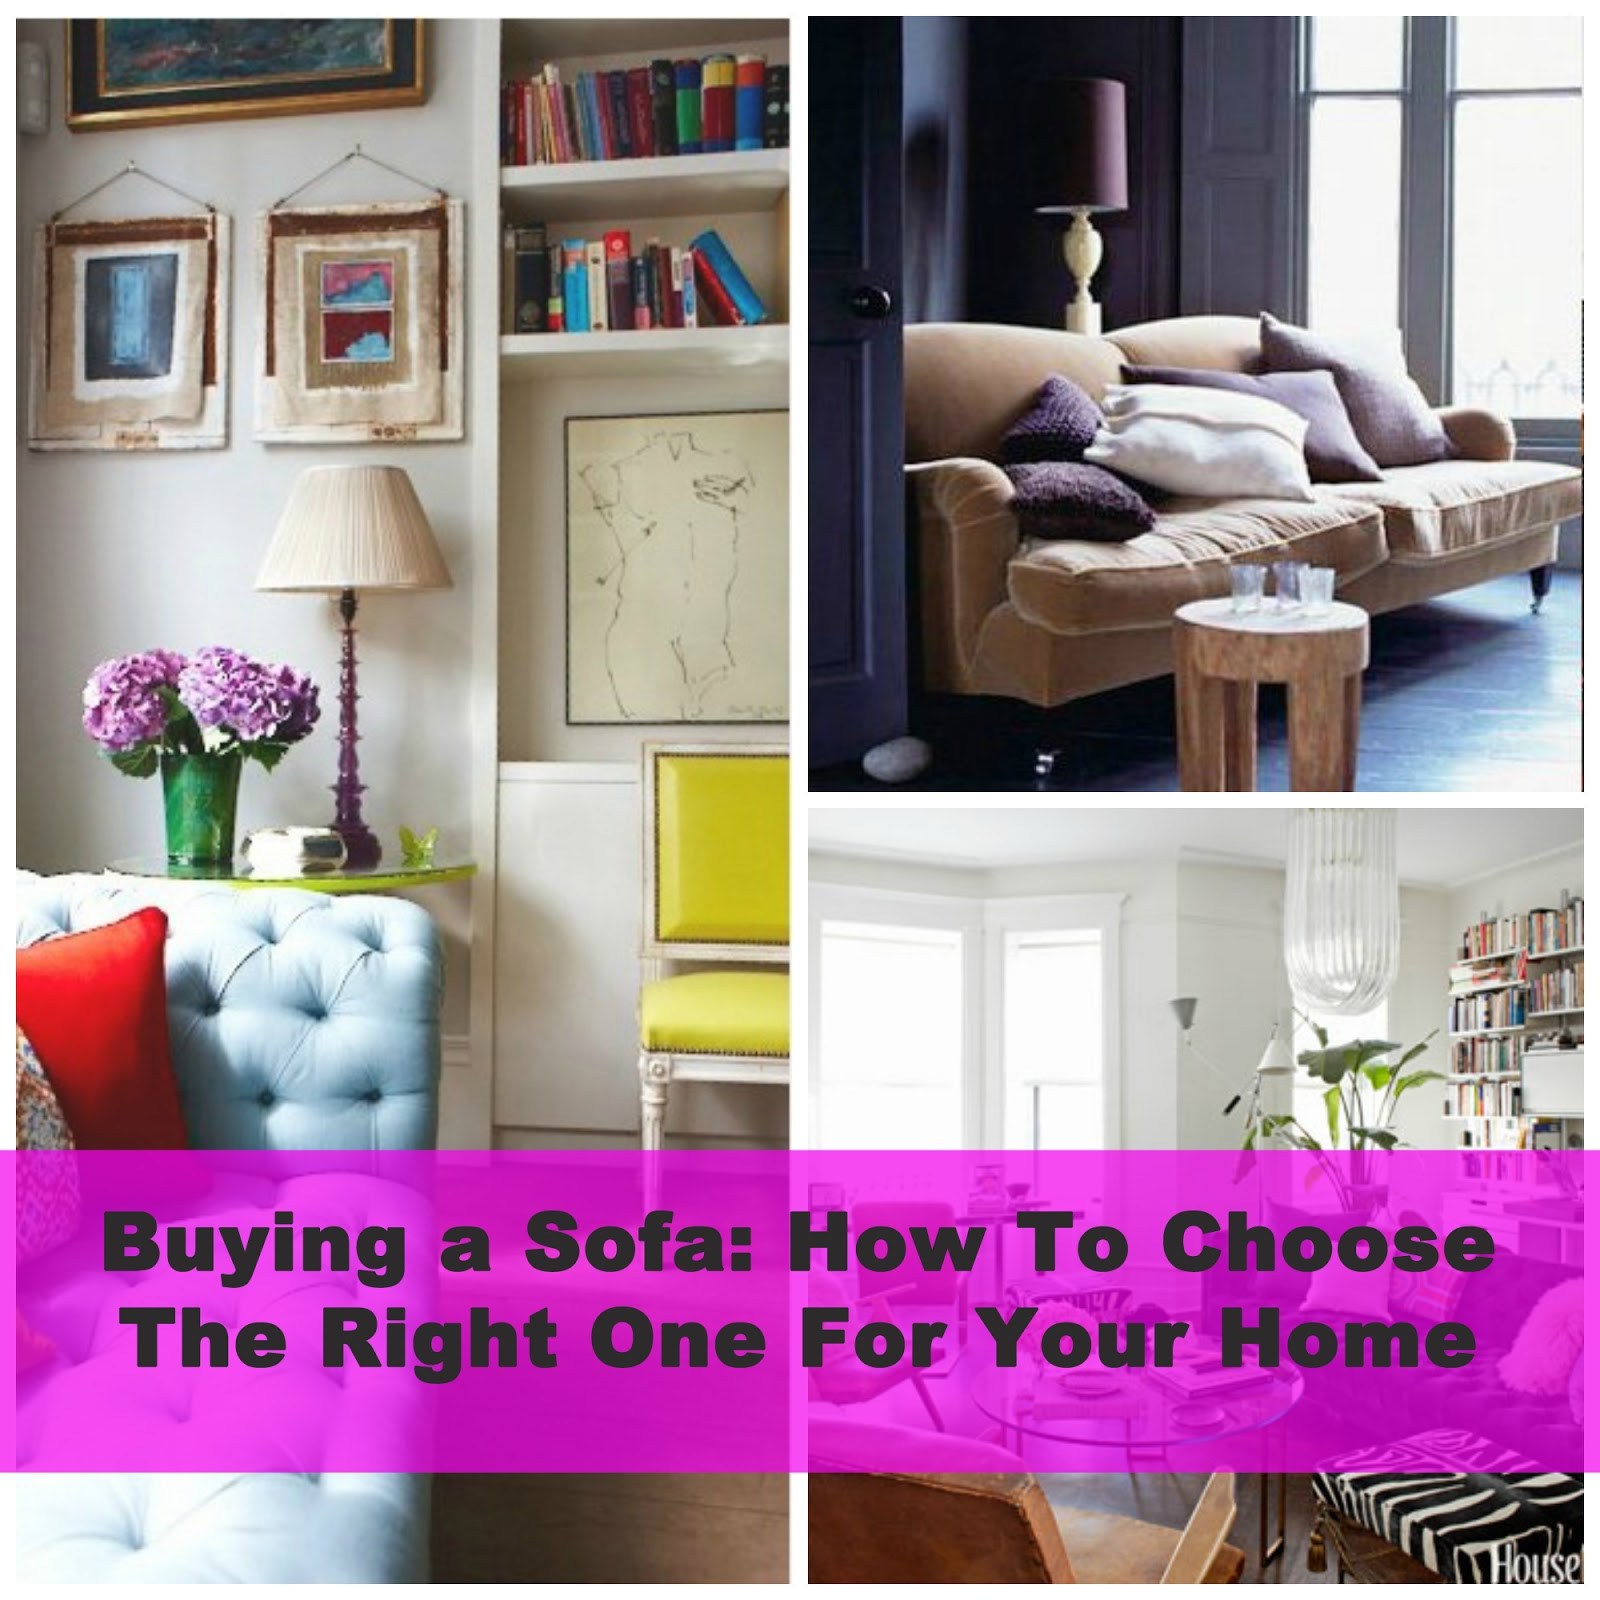 How To Choose A Couch Alluring With How to Choose Pictures for Your Home Images